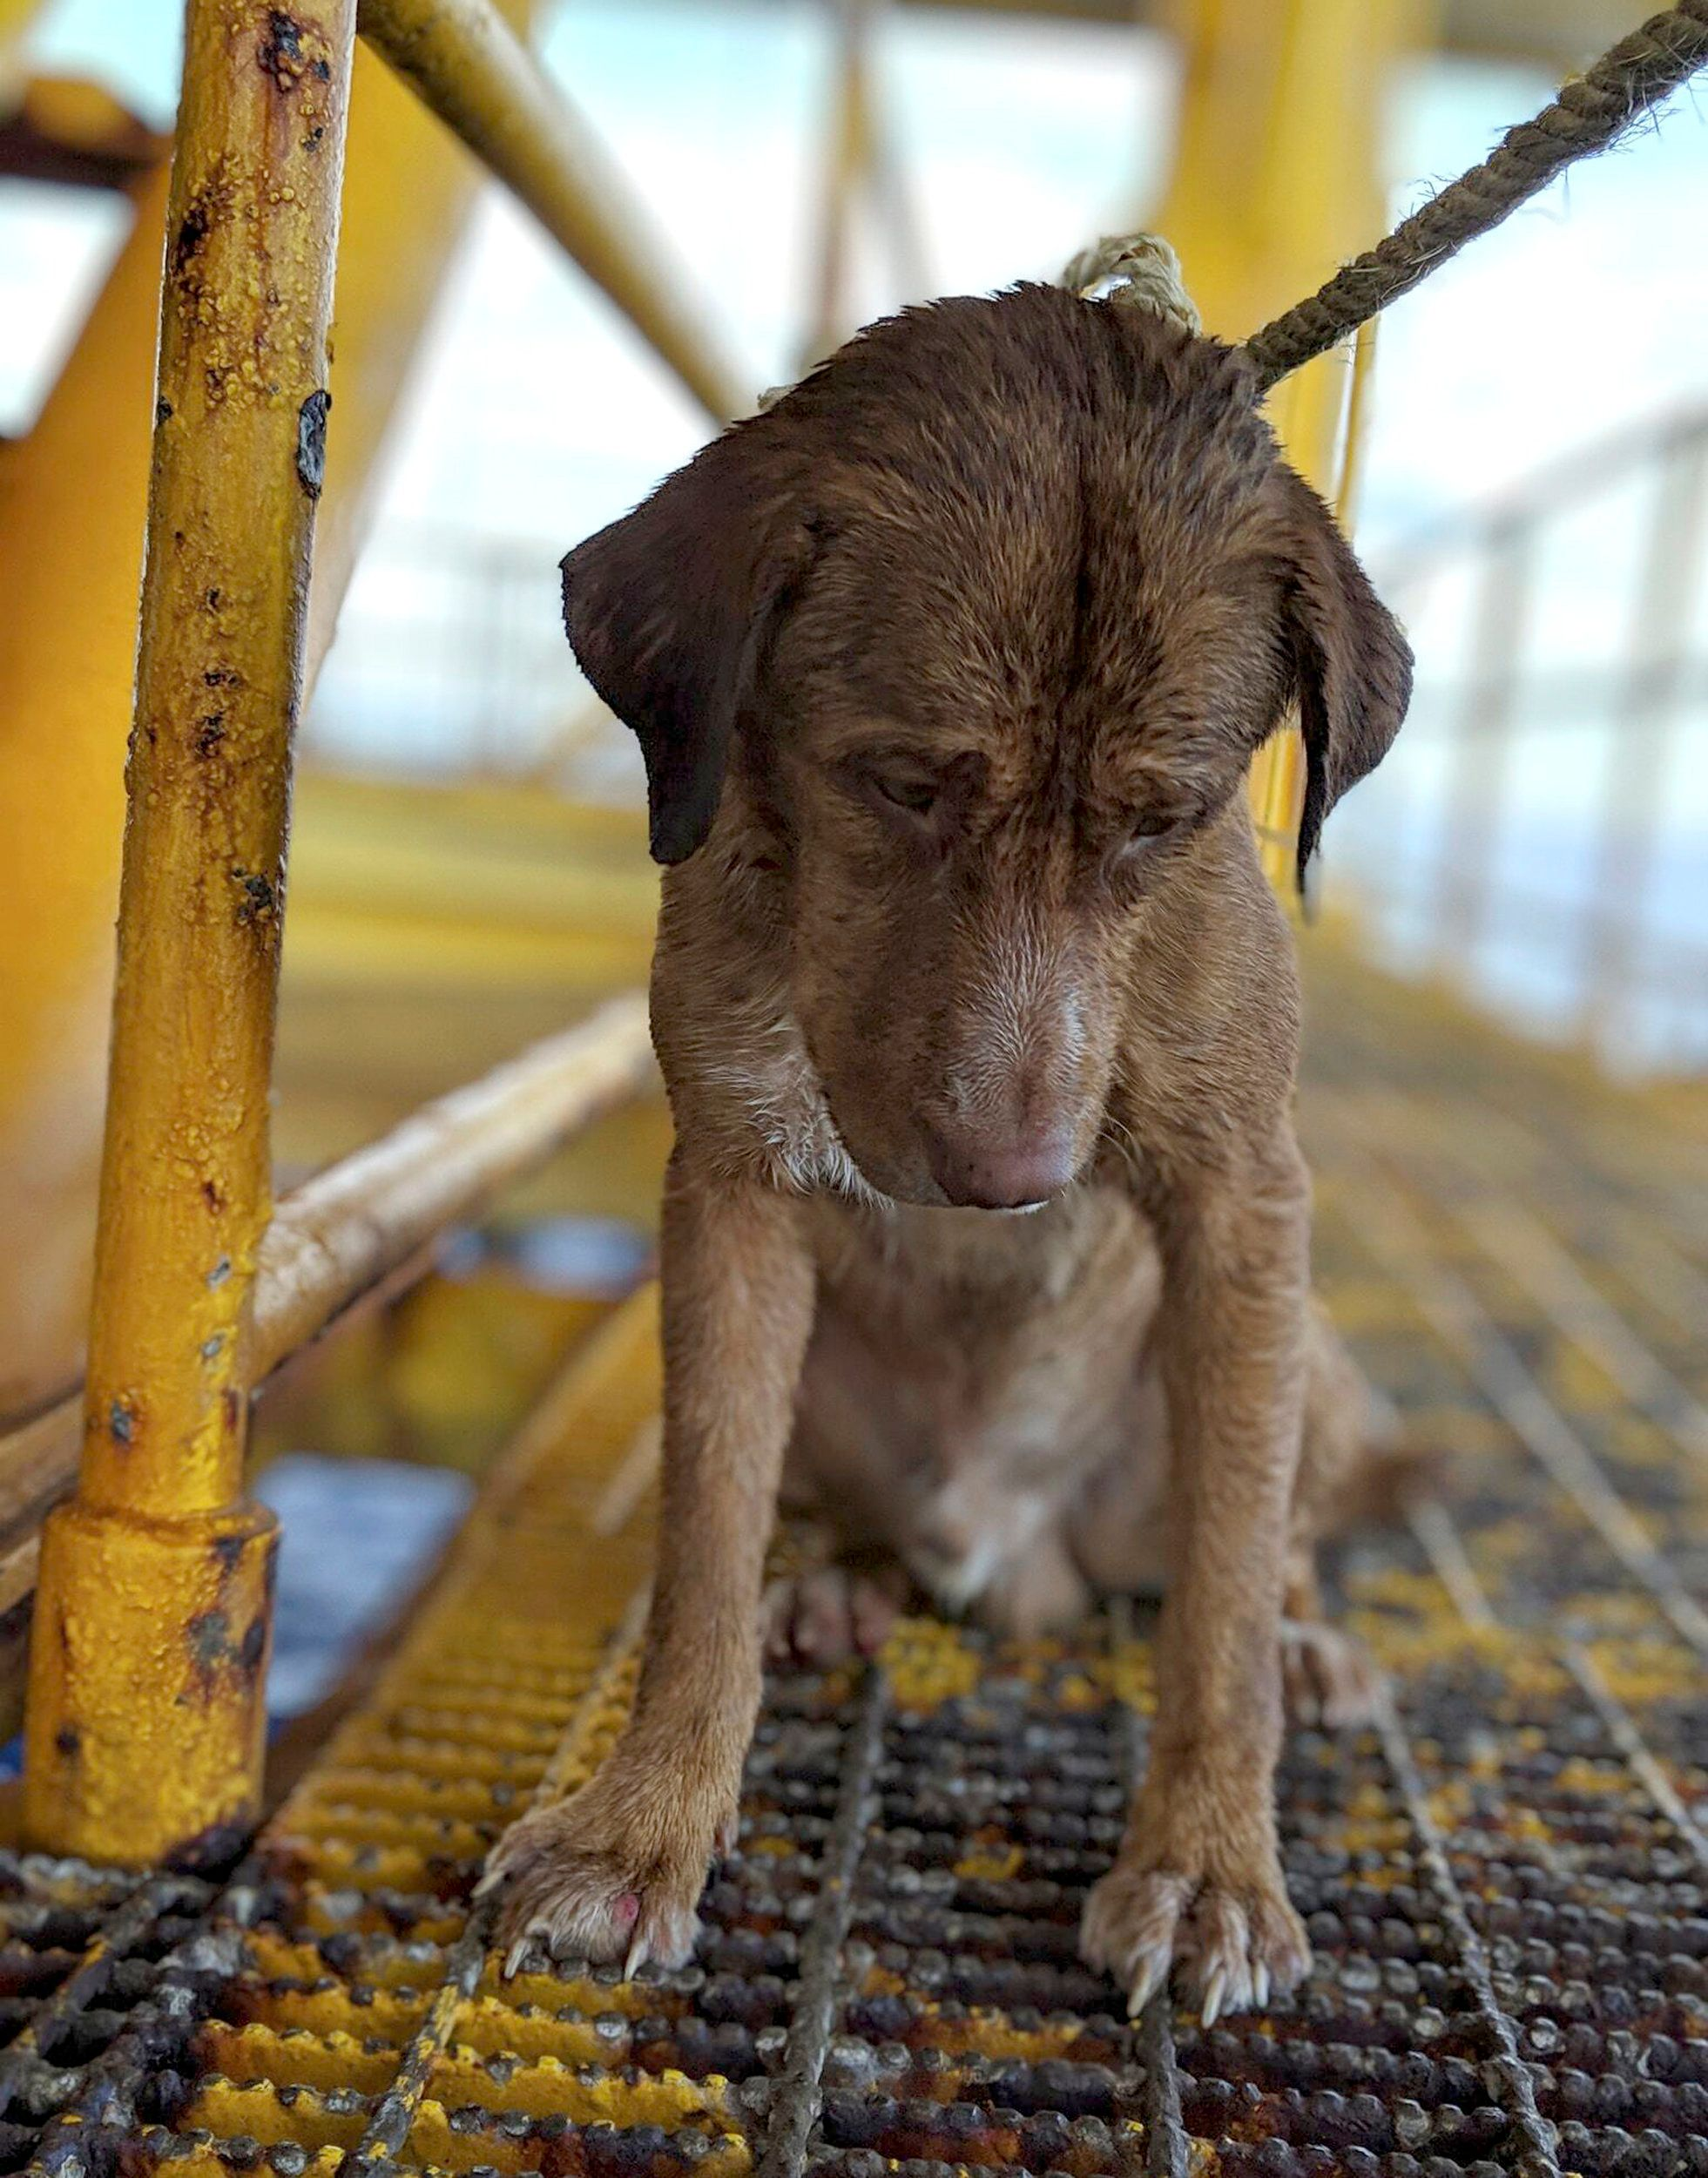 In this Friday, April 12, 2019, photo, a dog sits on an oil rig after being rescued in the Gulf of Thailand. The dog found swimming more than 220 kilometers (135 miles) from shore by an oil rig crew in the Gulf of Thailand was returned safely to land. Vitisak Payalaw, stationed on the rig belonging to Chevron Thailand Exploration and Production, said on his Facebook page the dog was glimpsed Friday swimming towards the platform, where it got a grip on a pole at sea level. (Vitisak Payalaw via AP)